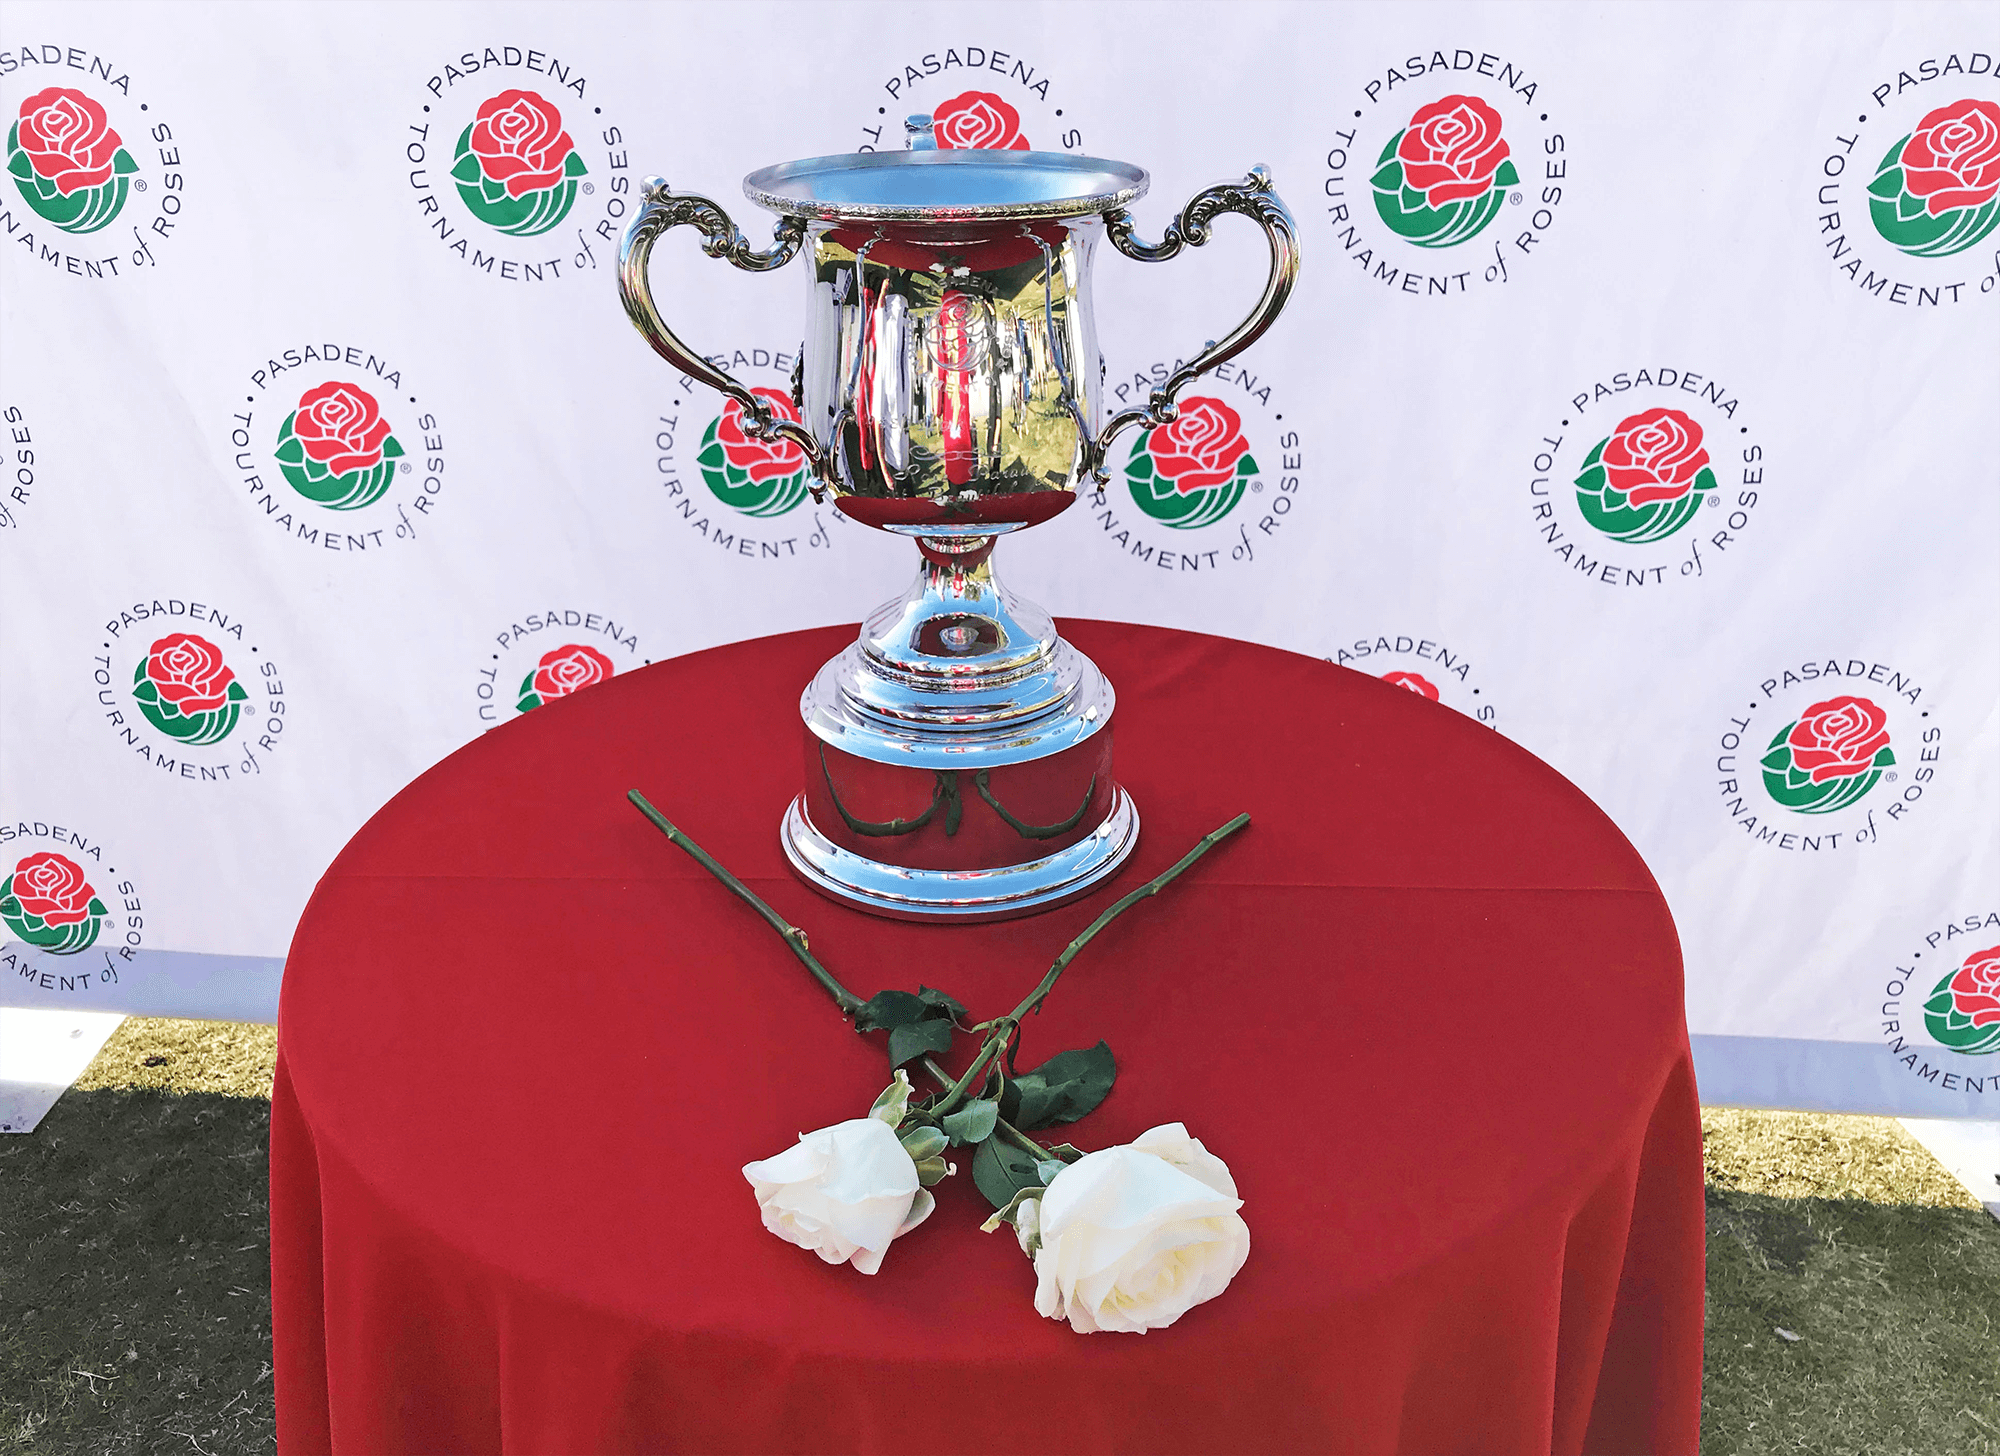 The floats took home the Sweepstakes Trophy for most beautiful design, floral presentation, and entertainment in both 2019 and 2020.